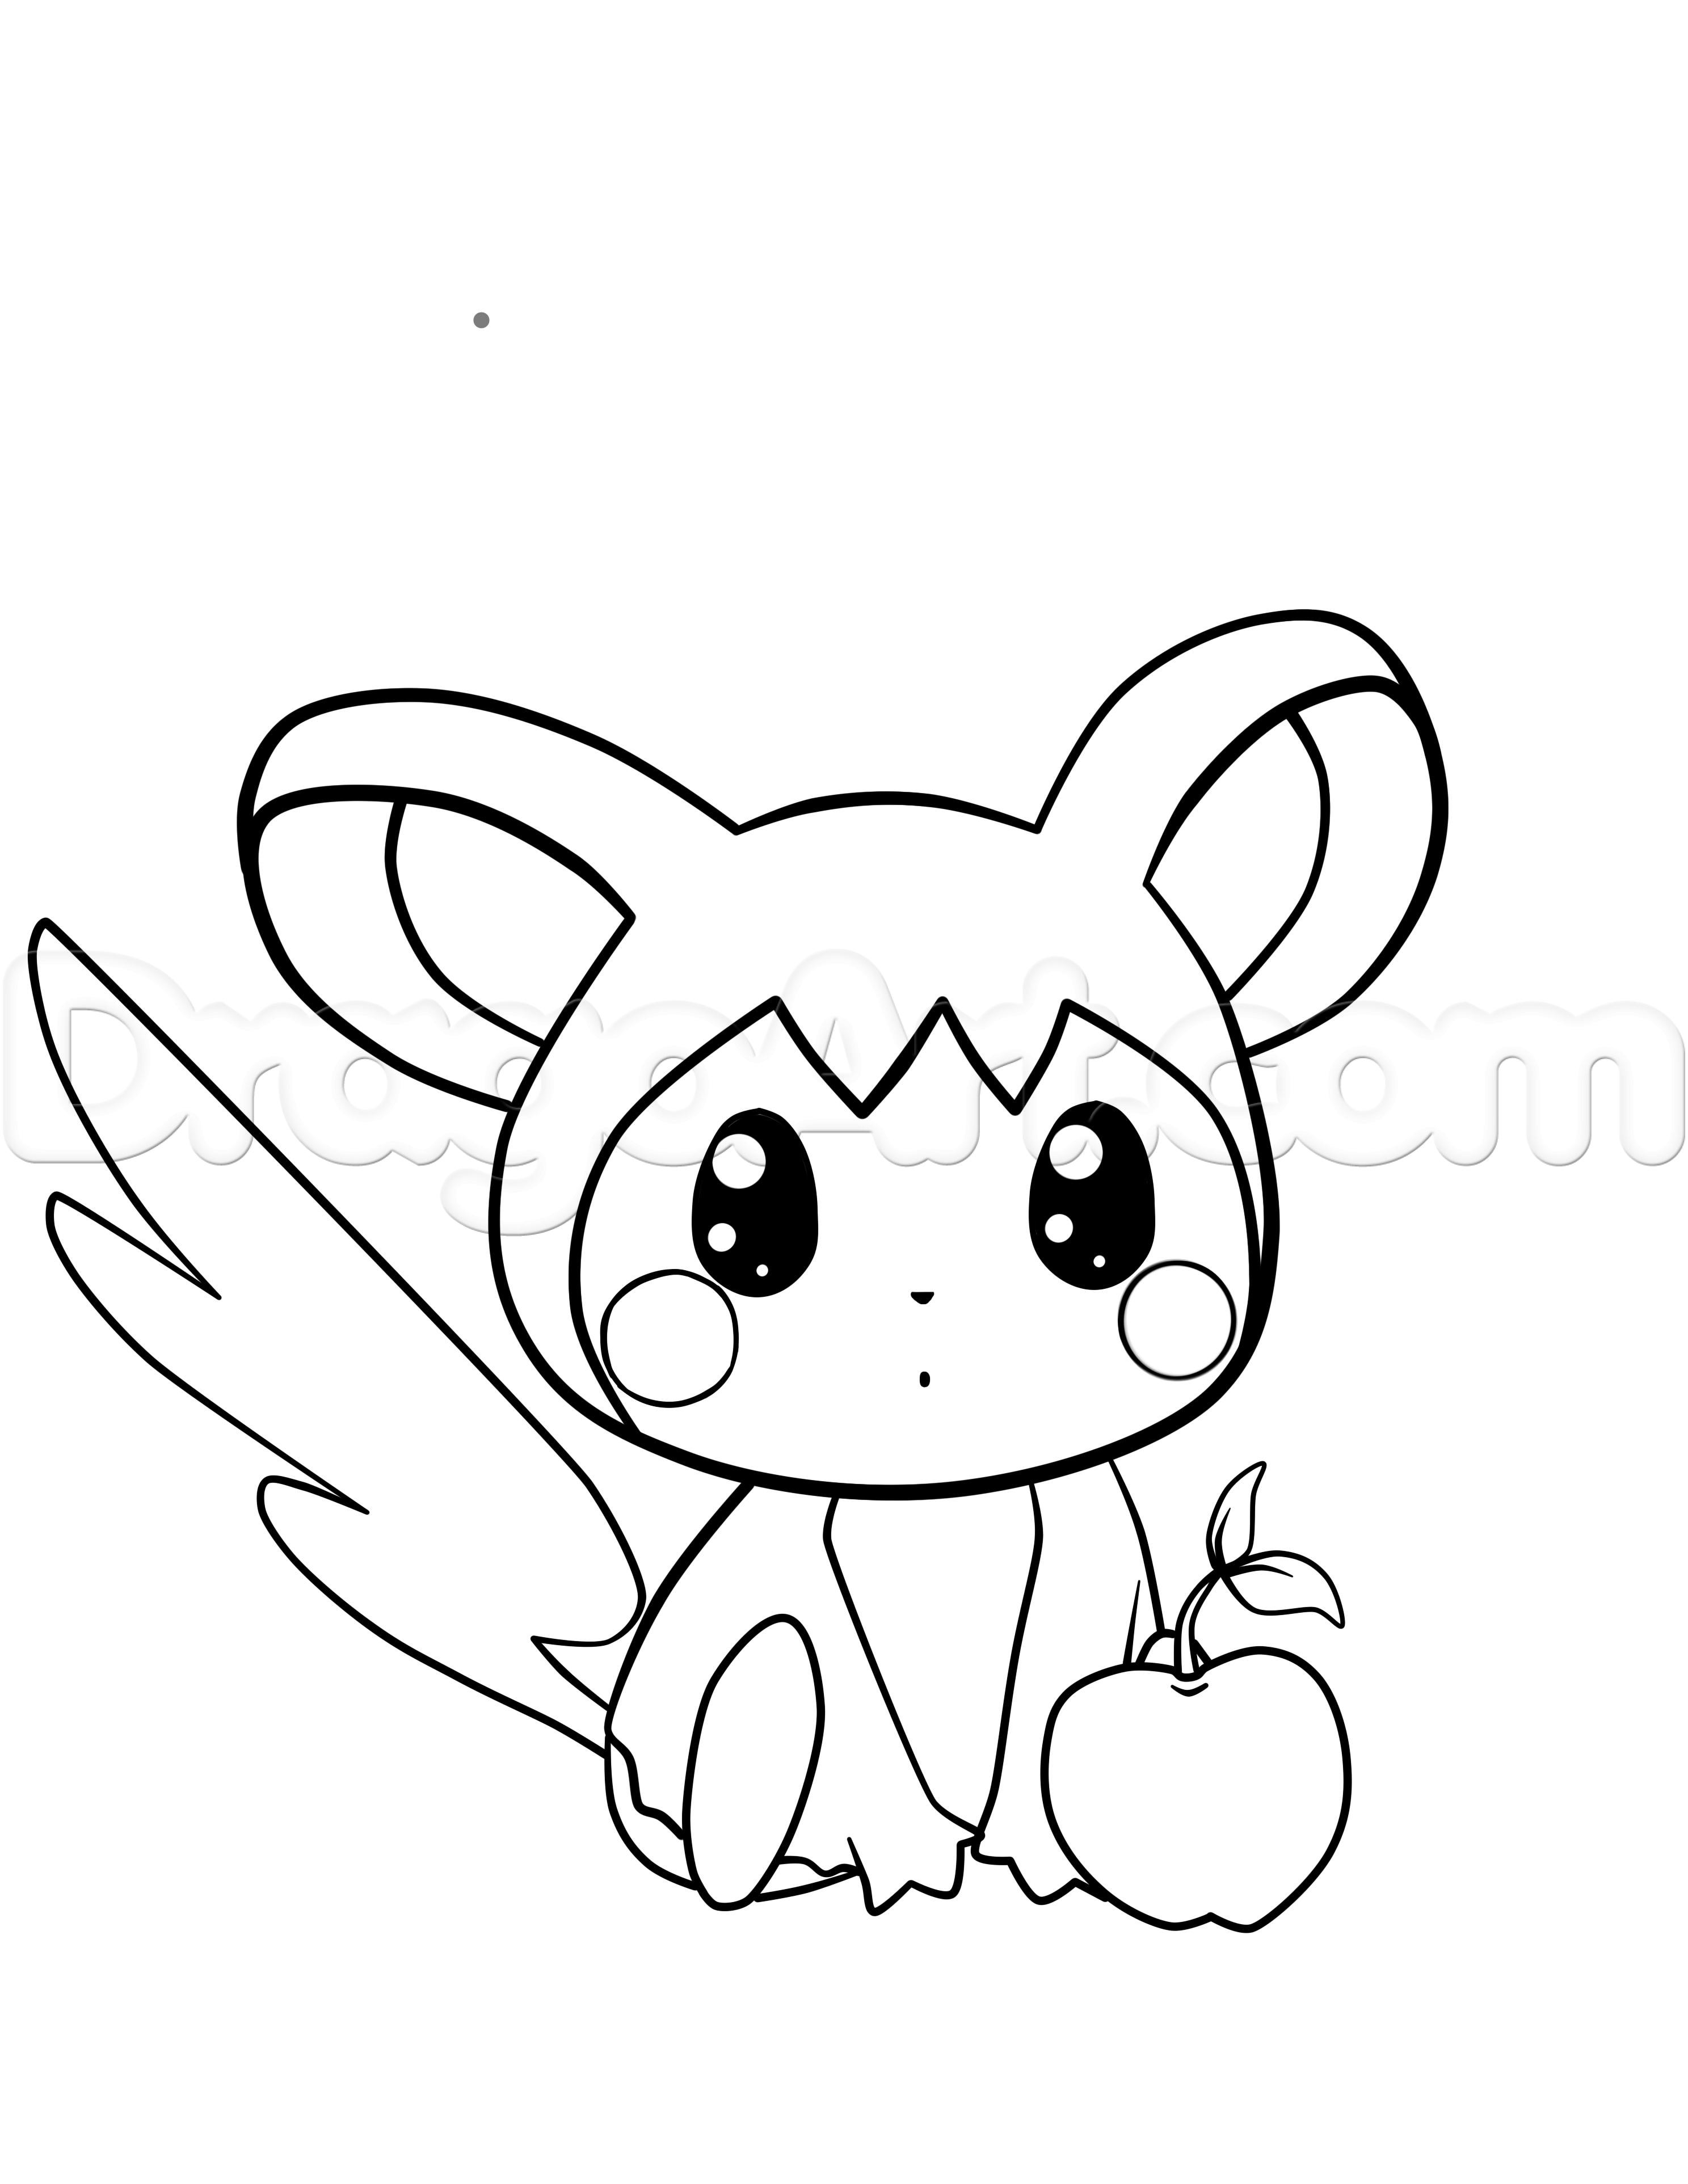 2975x3850 Drawings Of Pokemon Characters How To Draw Pokemon Characters